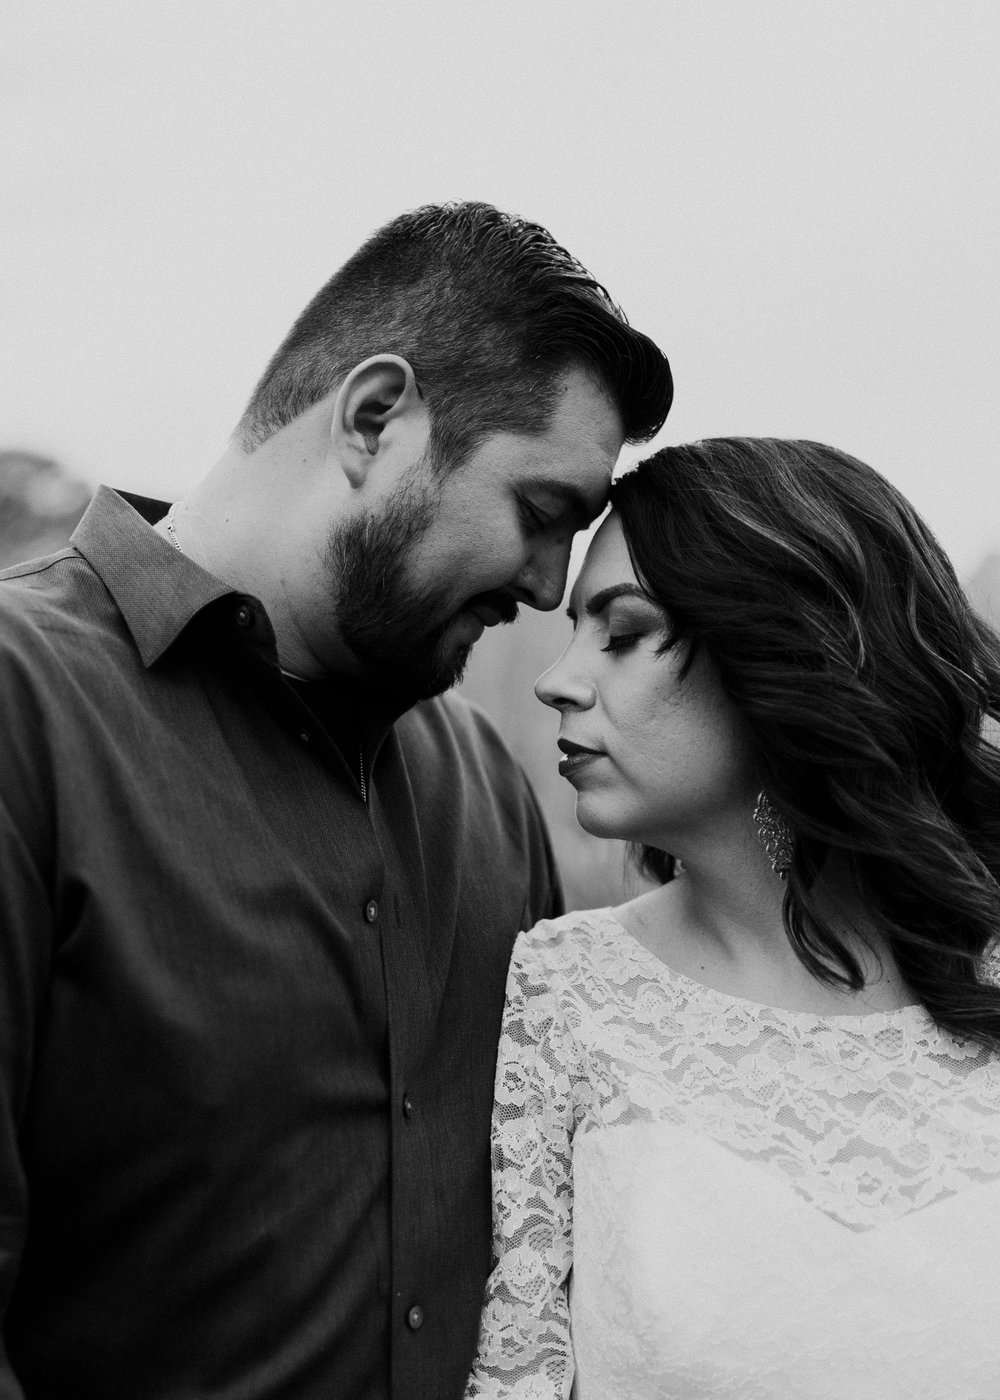 Javier & Marcella - Are just the sweetest couple, we had such an awesome time capturing their love. We are so excited for their wedding day. Enjoy this blog post of their sweet engagement session.